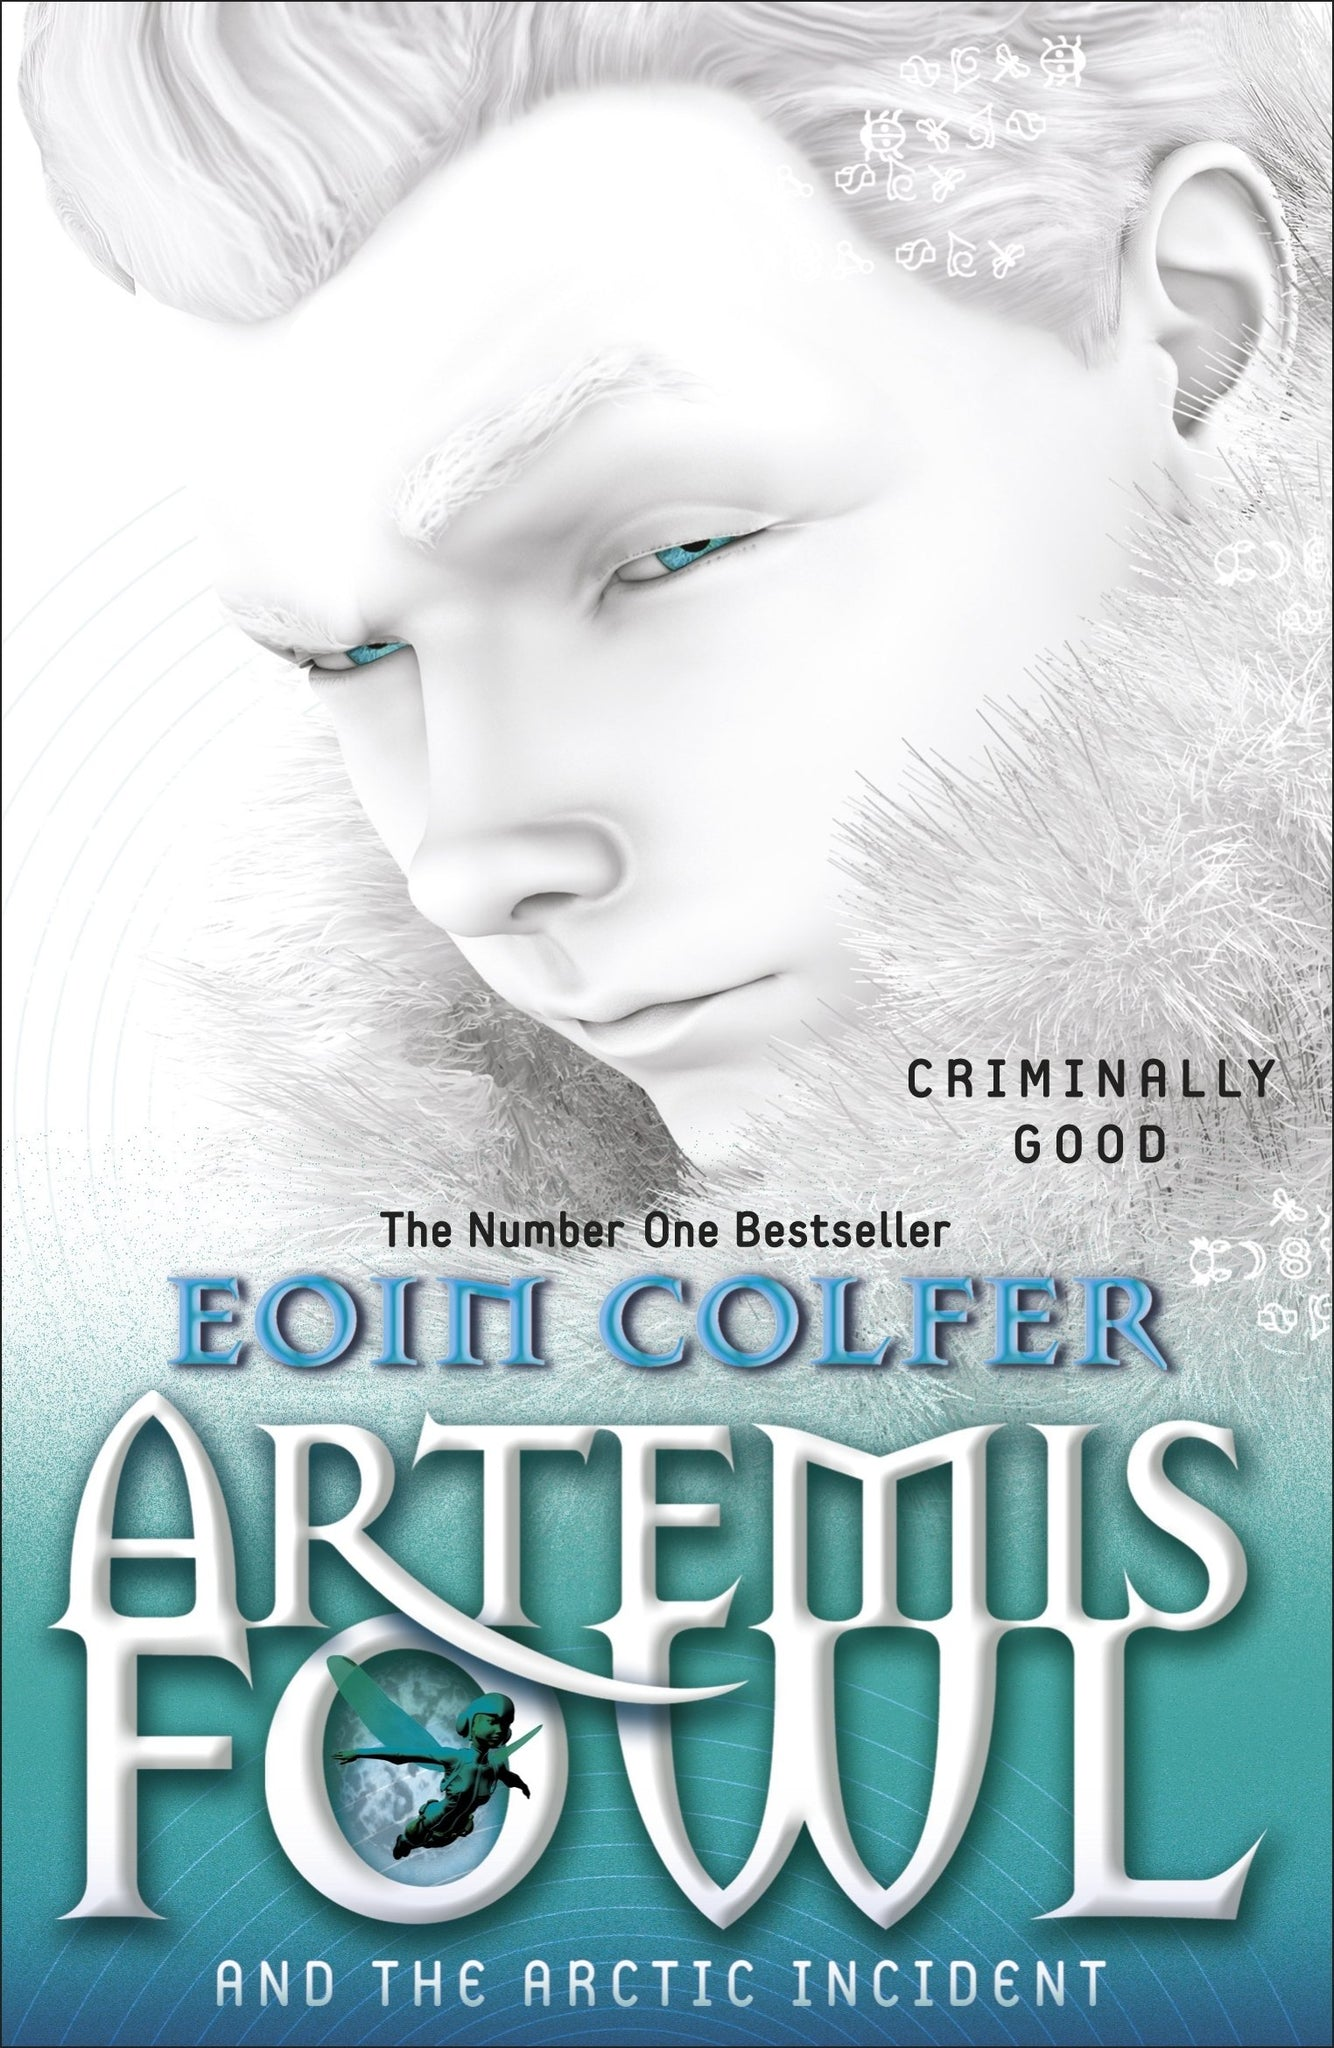 Artemis Fowl and the Artctic Incident